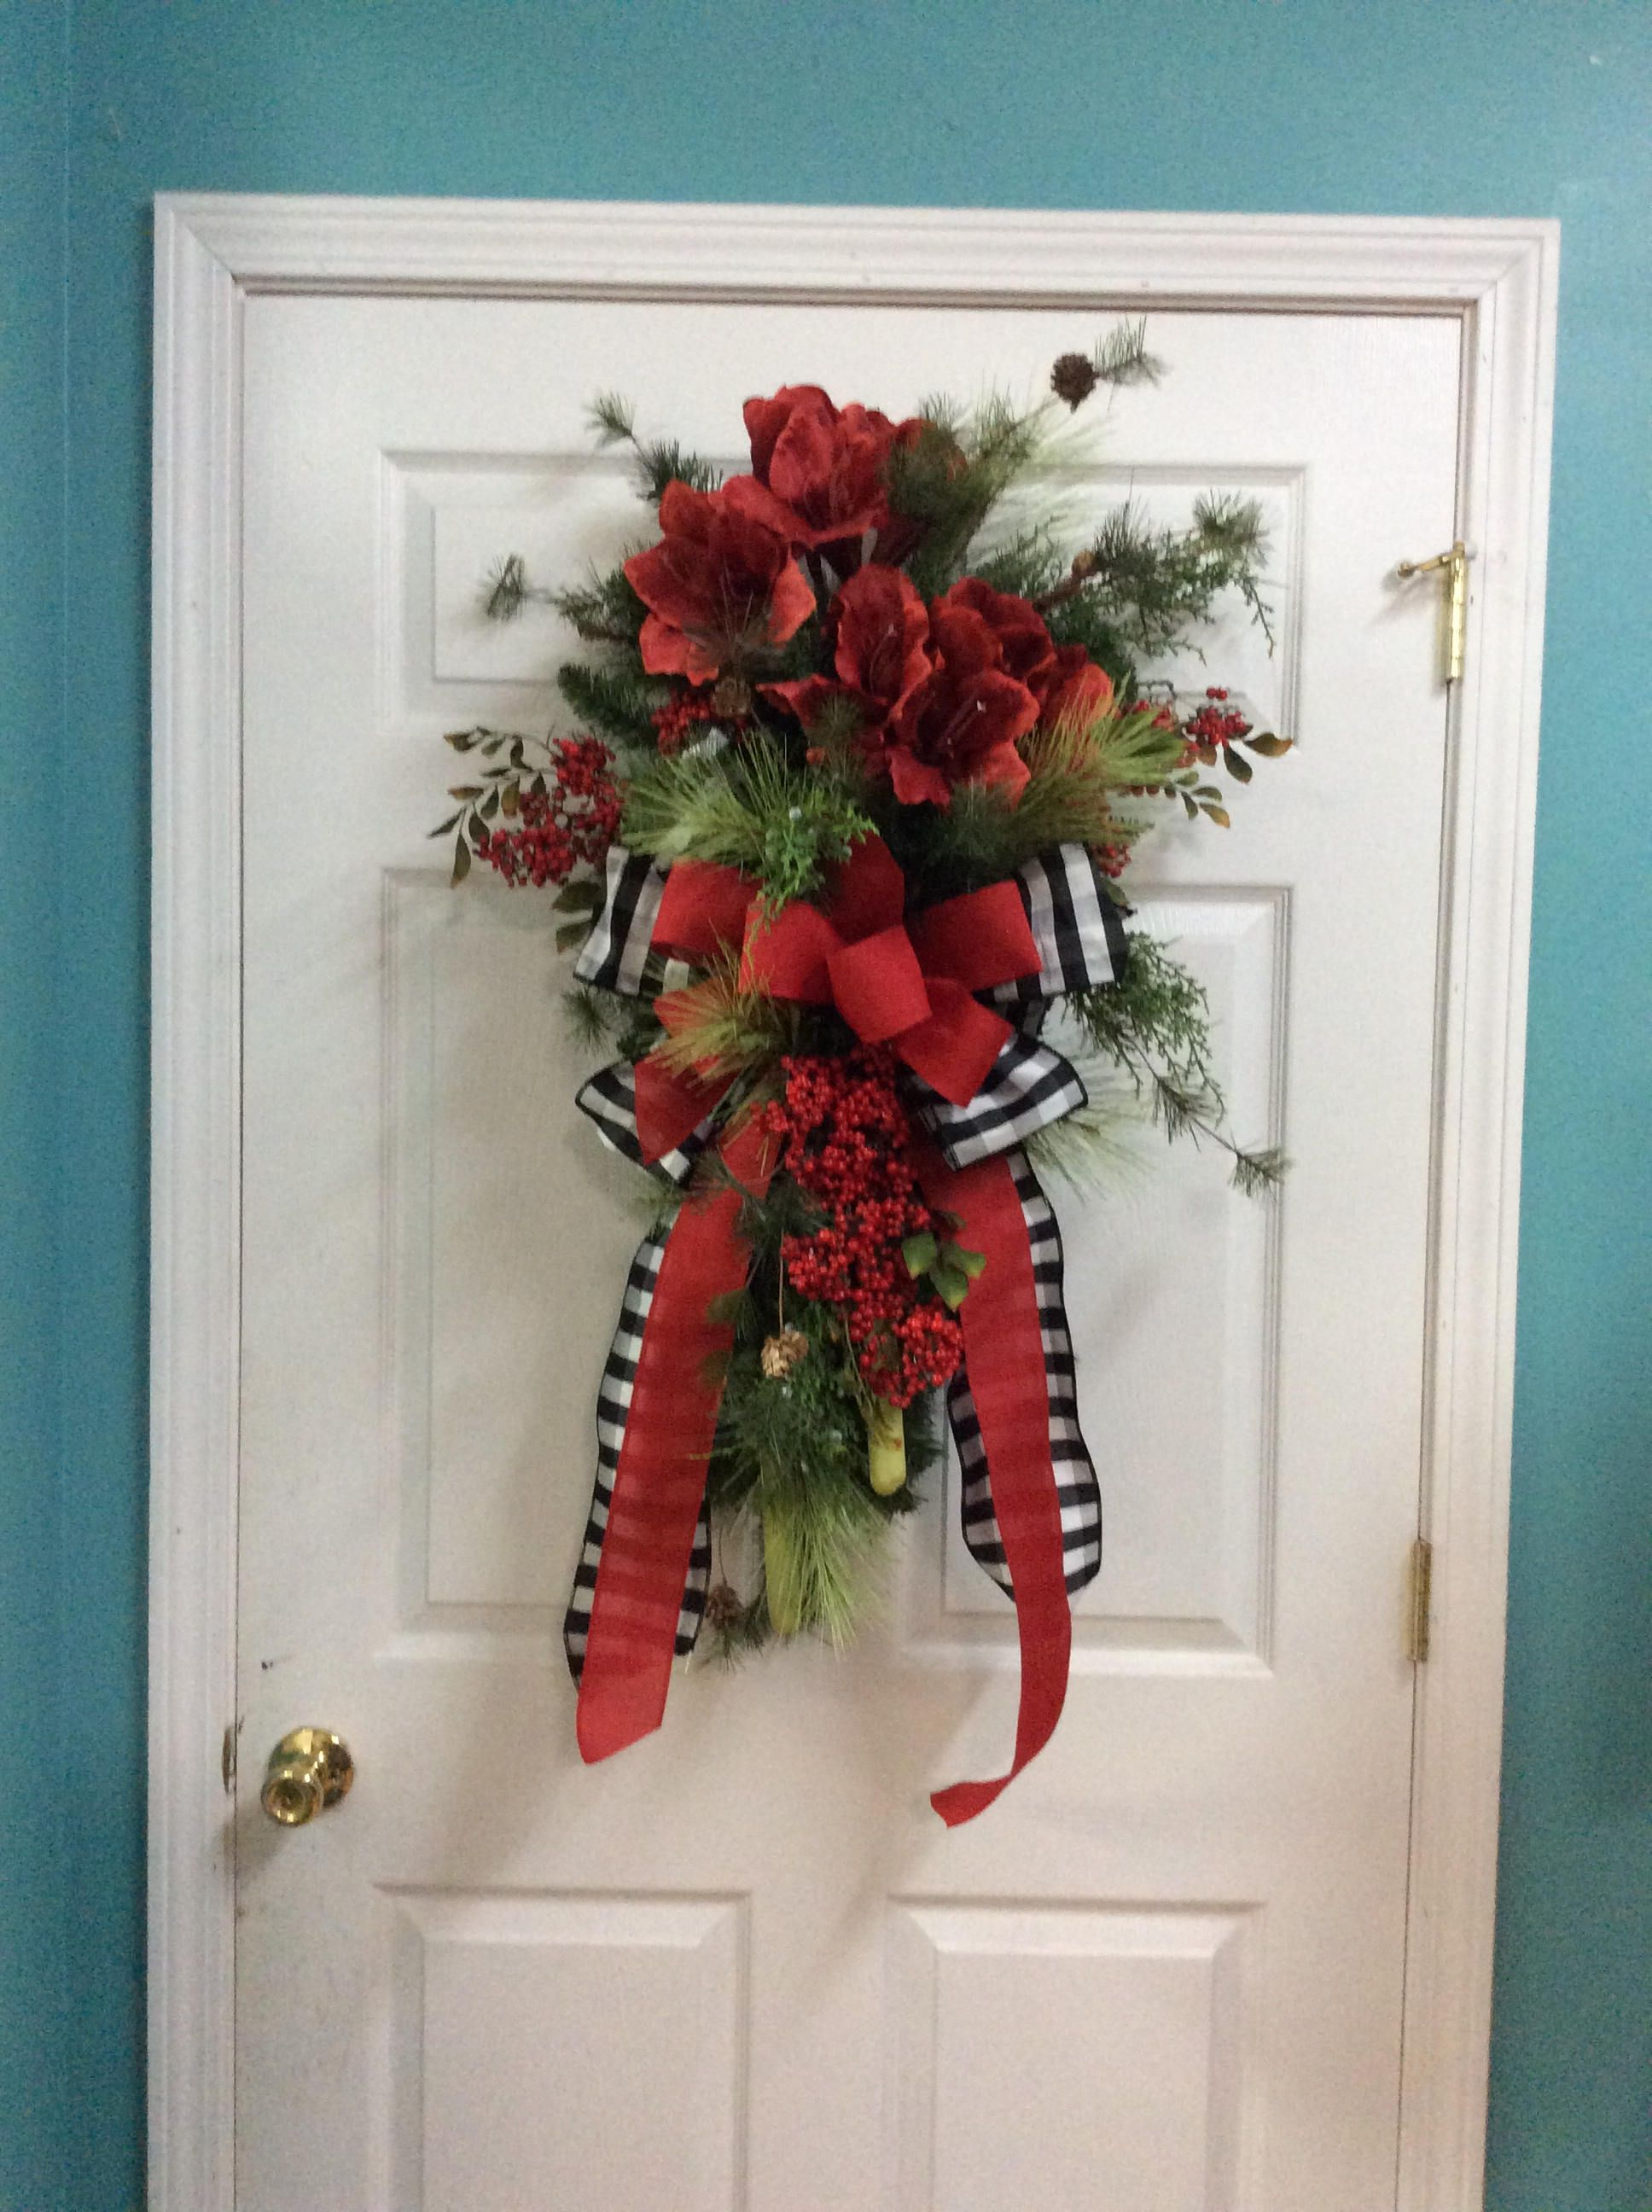 Christmas double door swags,Christmas swags for double